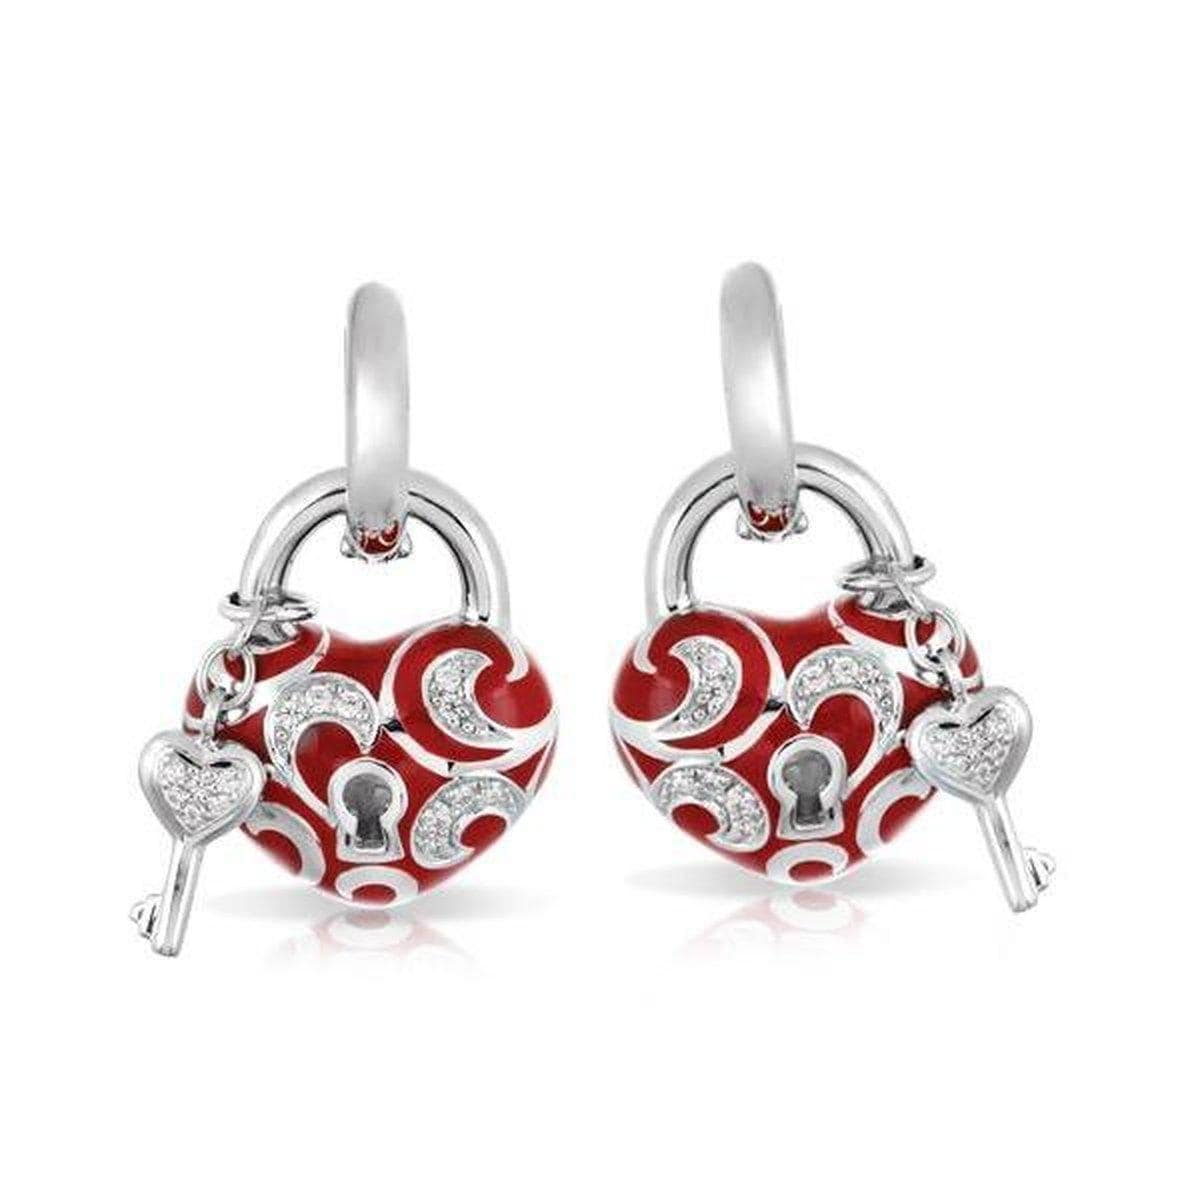 Key to My Heart Red Earrings-Belle Etoile-Renee Taylor Gallery